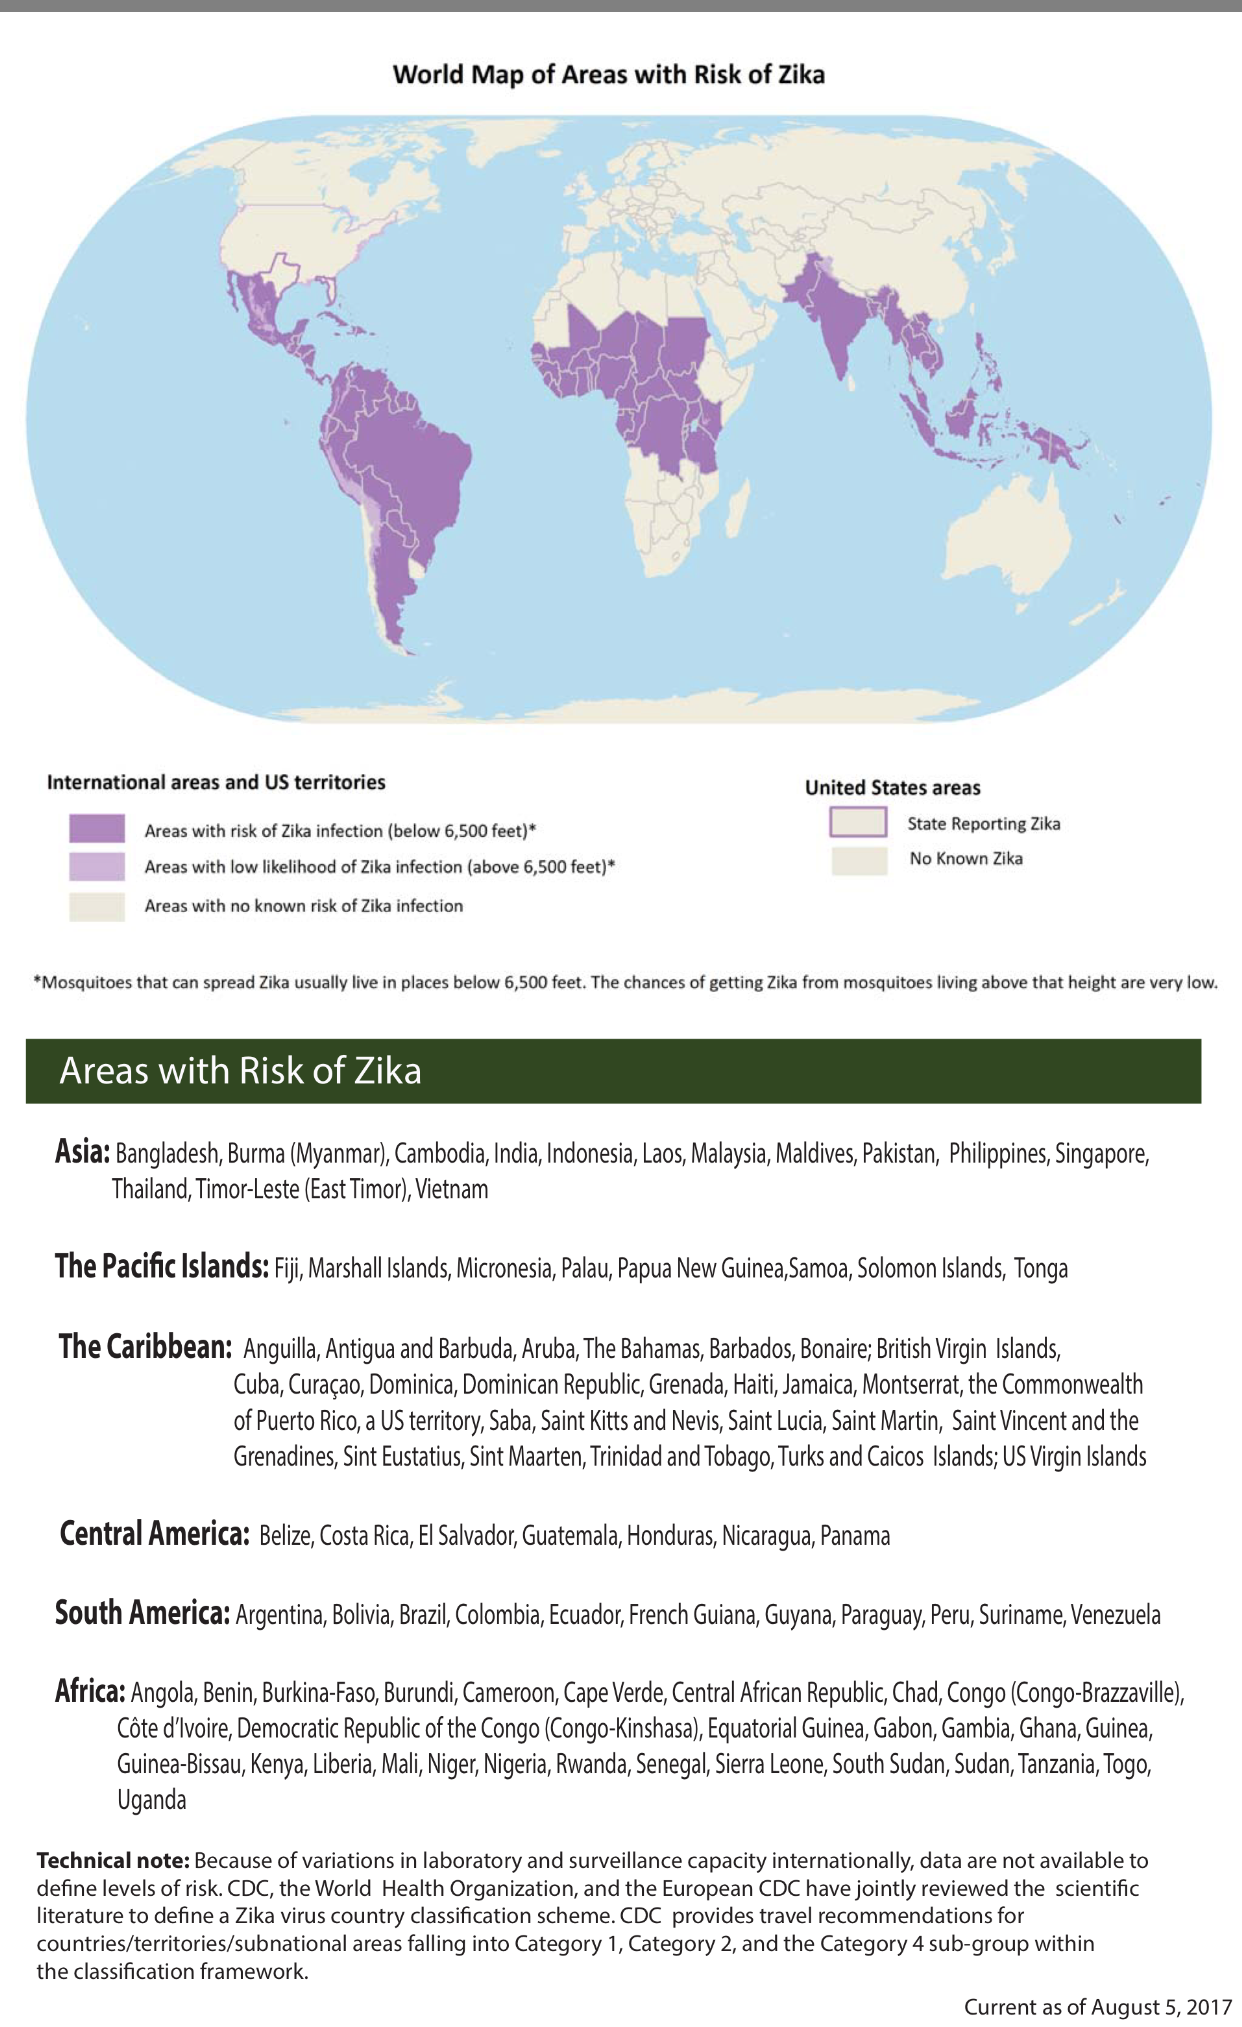 World Map of Areas with Risk of Zika